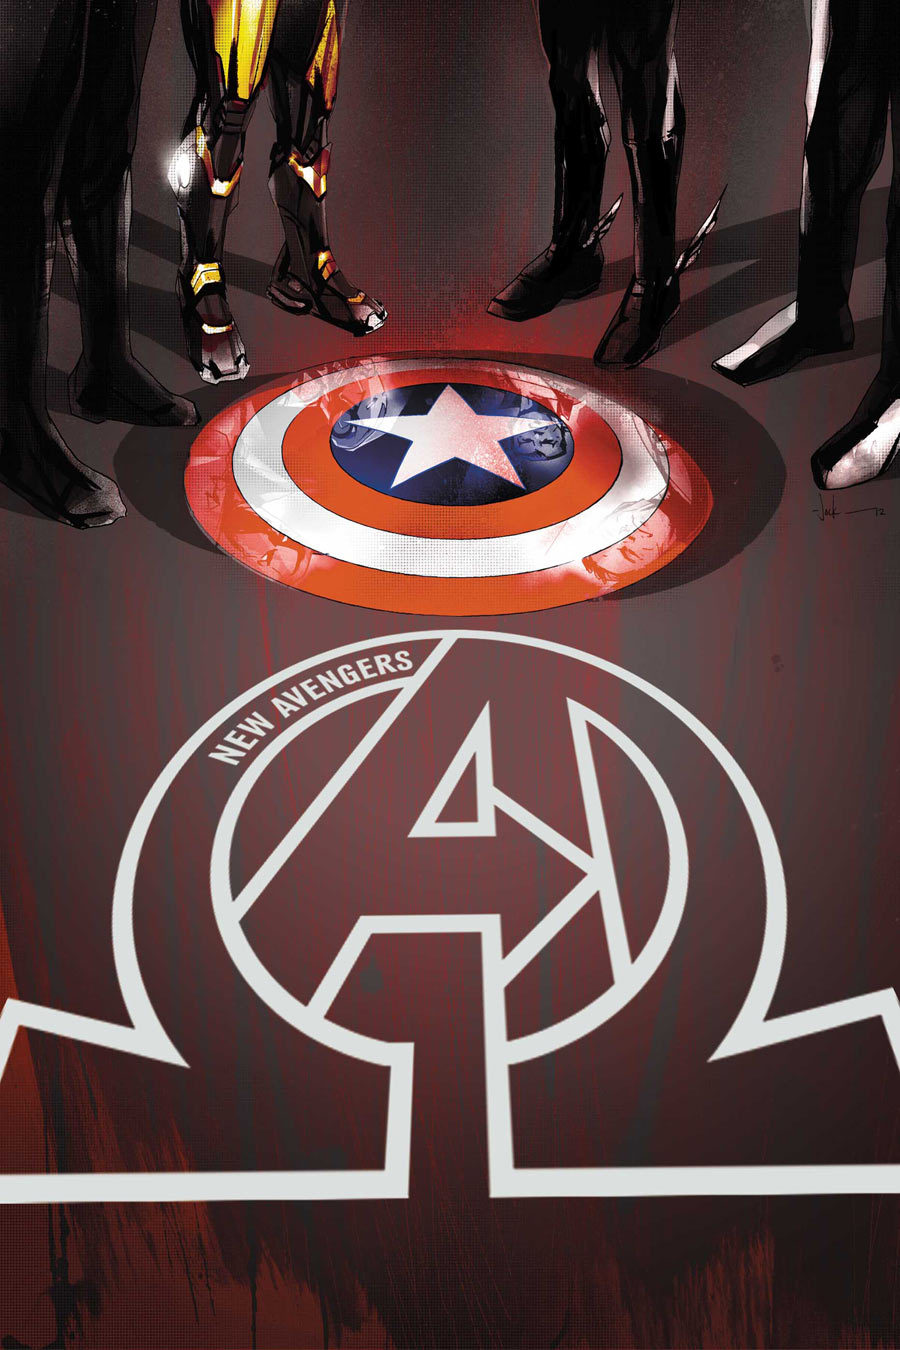 Marvel comics for February 2013: this is the cover for New Avengers #3, drawn by Jock. The aspect that makes this work for me is the reflection of the heroes in the shield.